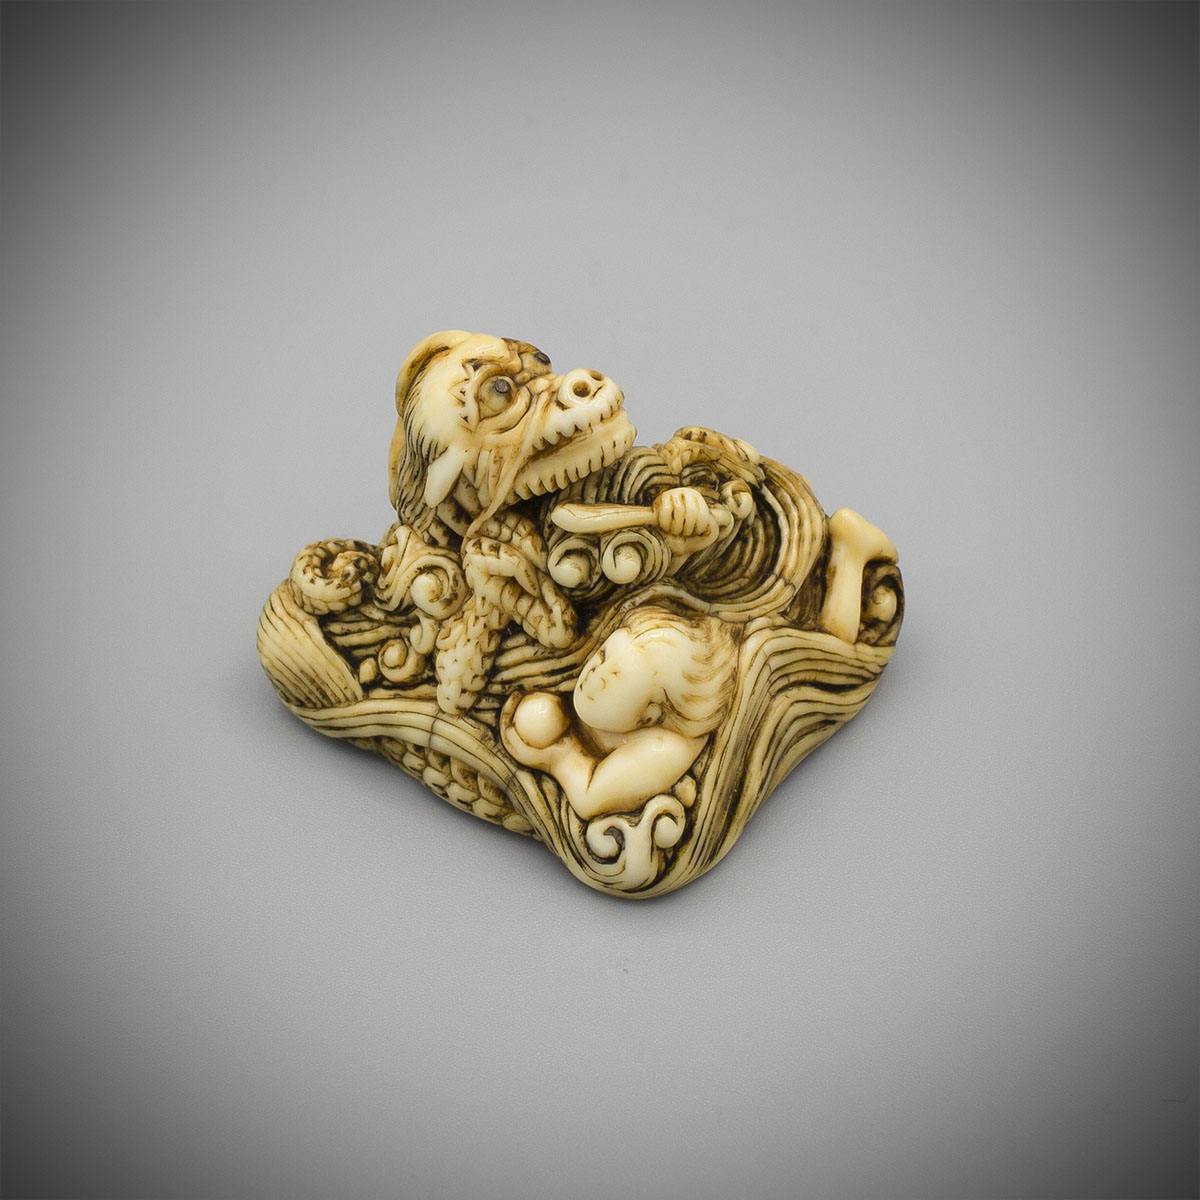 Ivory Sankaku Netsuke of Tamatori and a Dragon by Hozan, MR3553_v.1